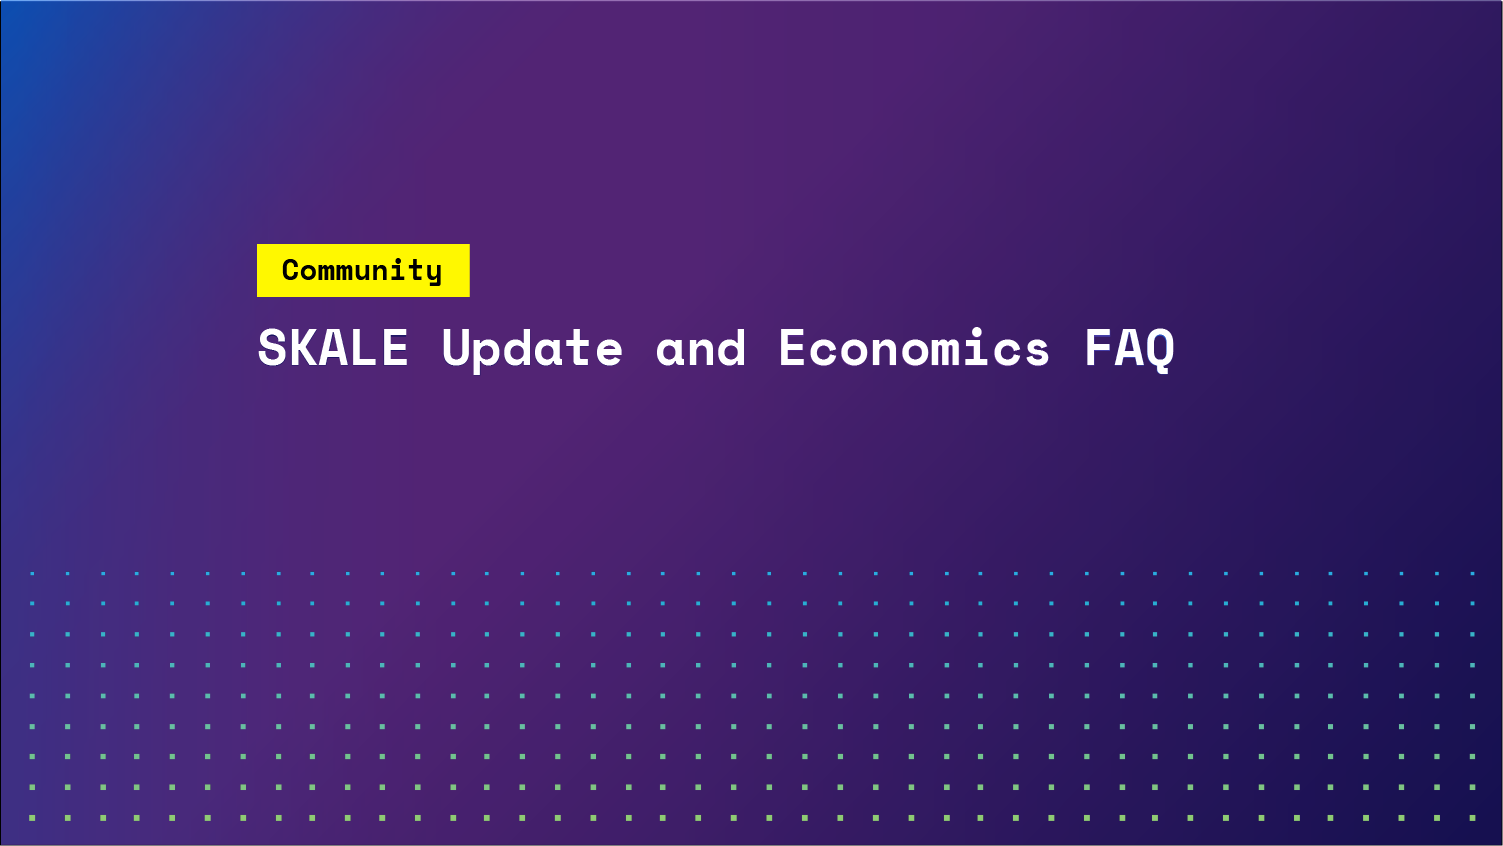 SKALE Update & Economics FAQ